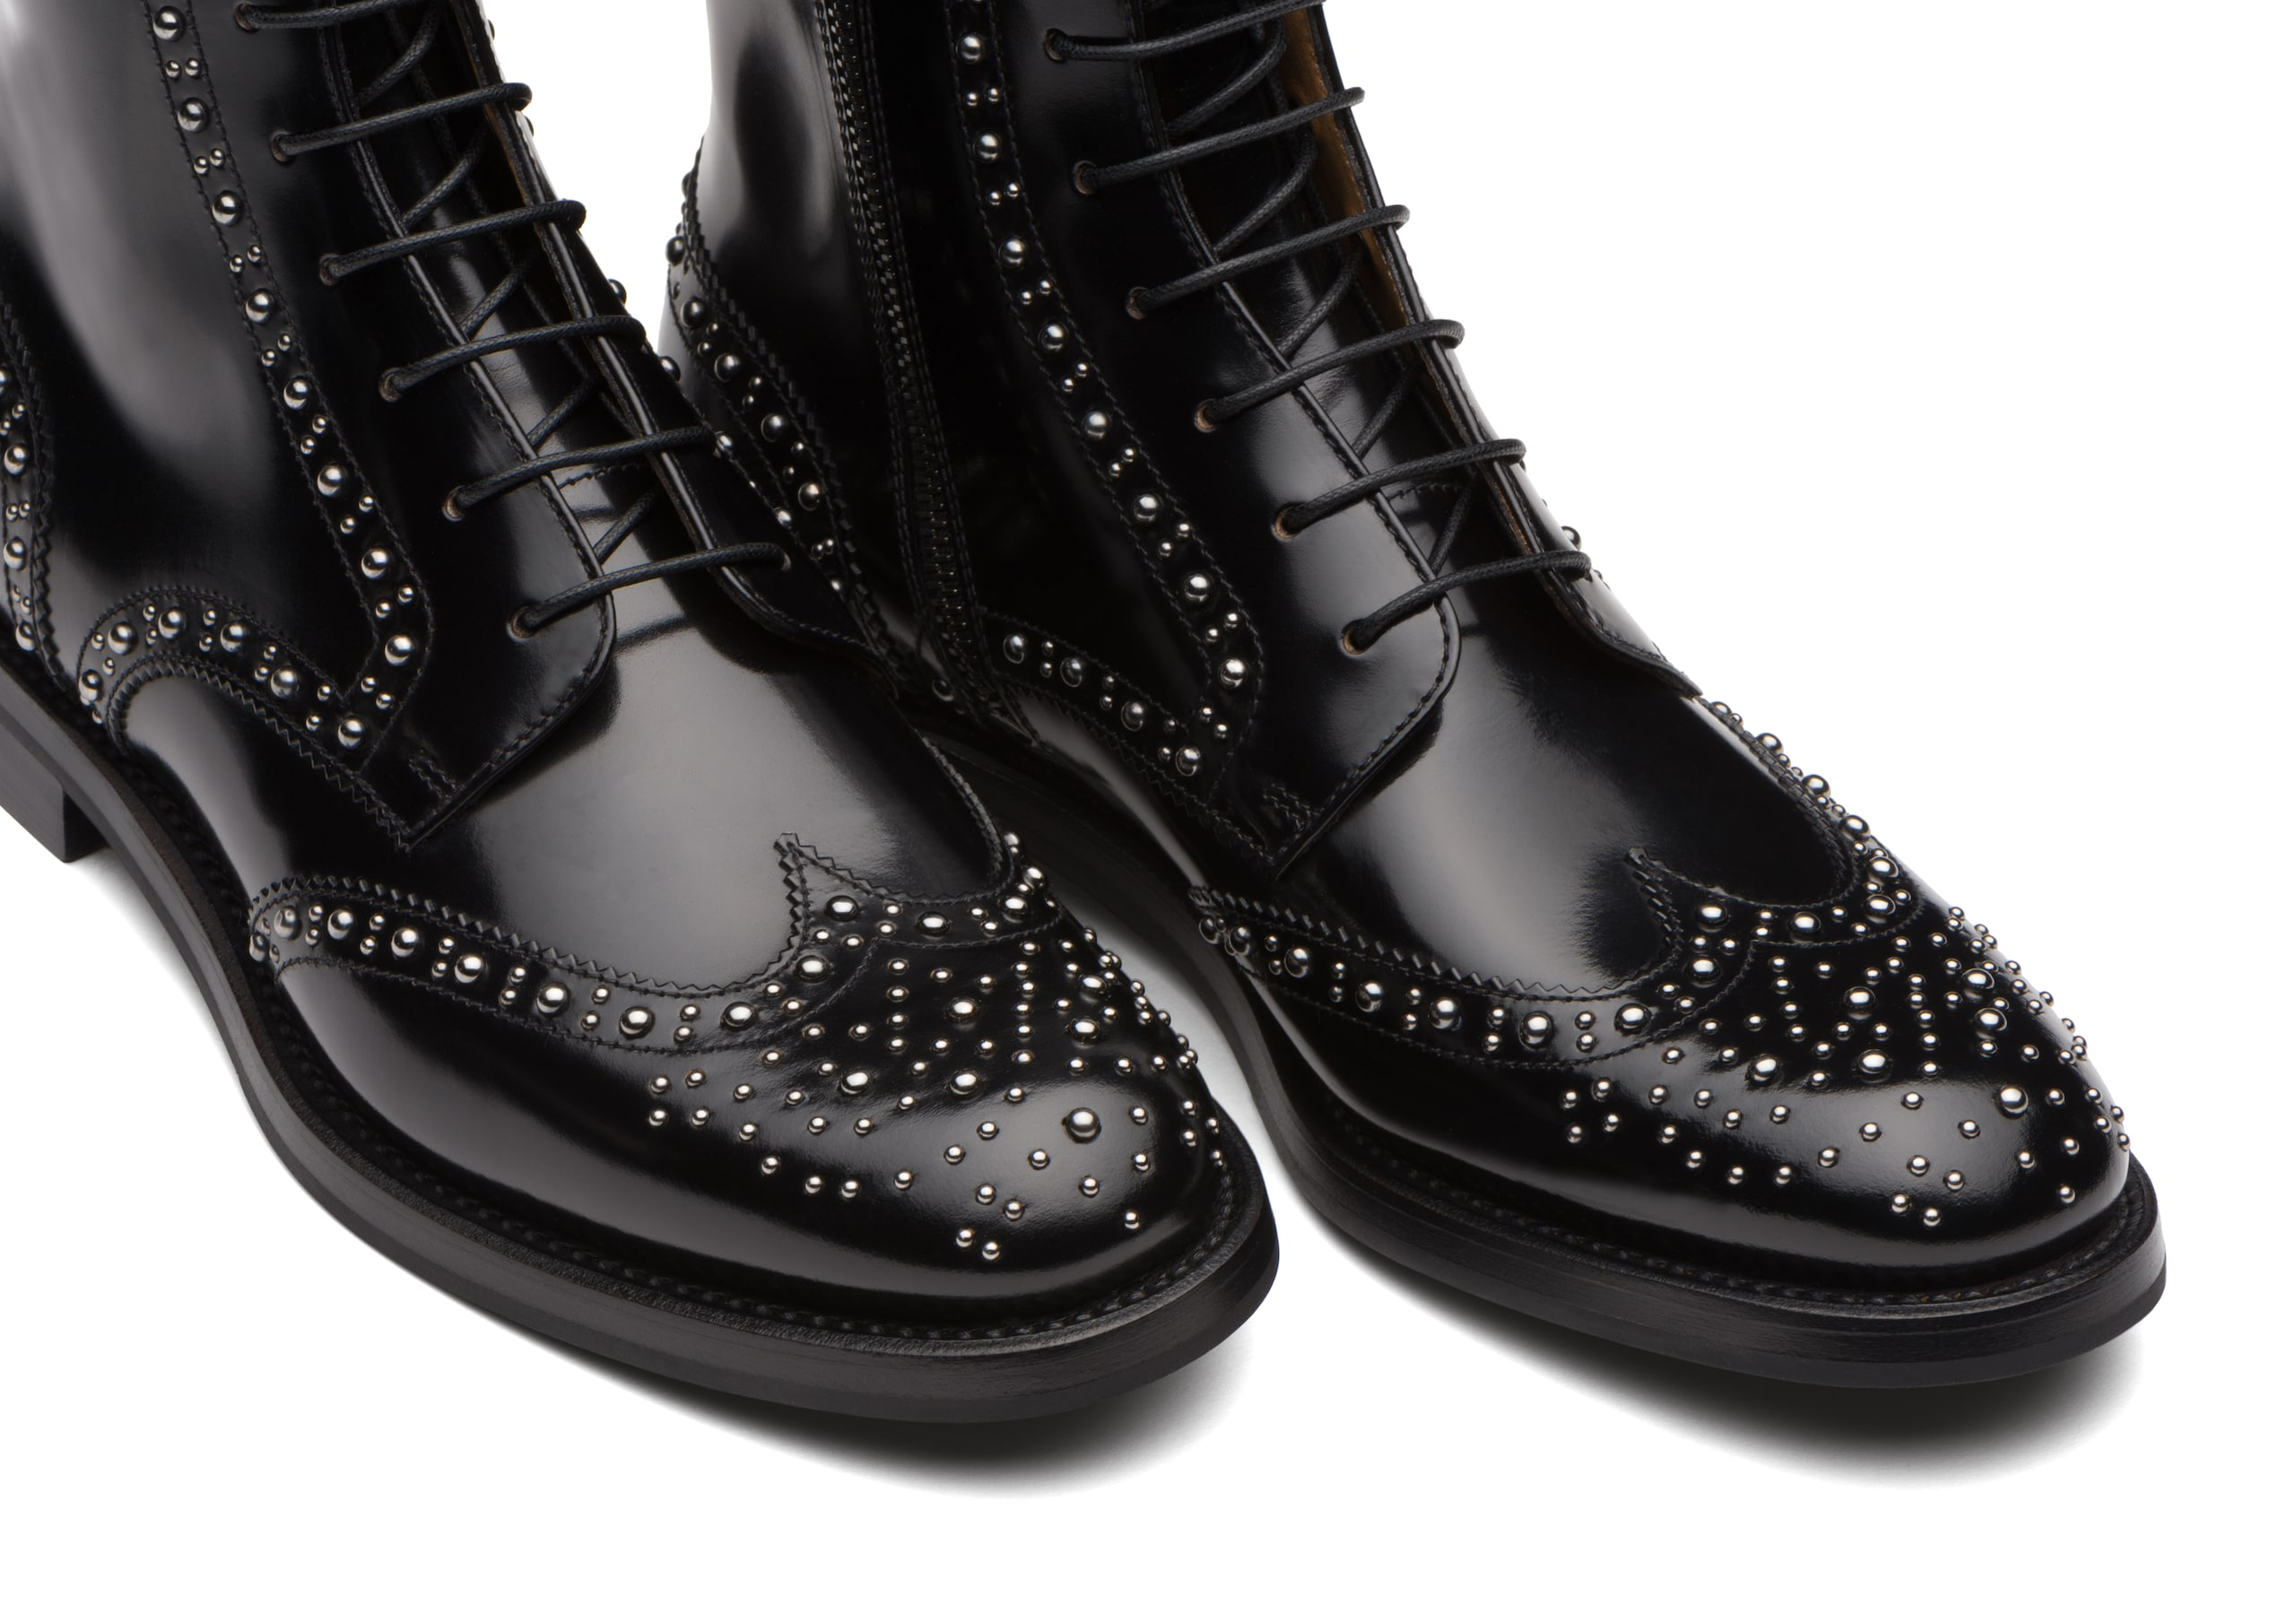 Cora met Church's Polished Binder Lace-Up Boot Stud Black